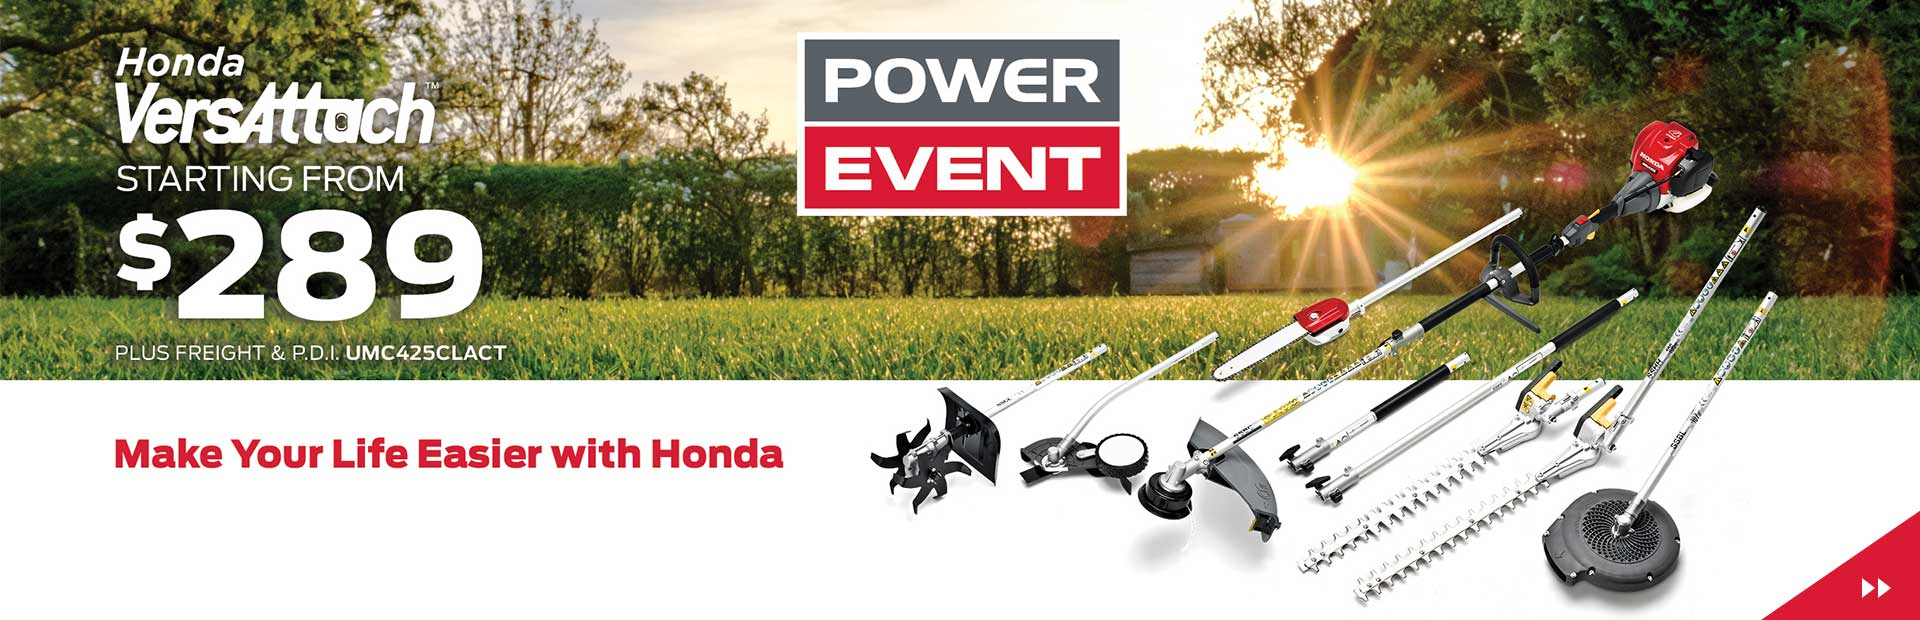 Honda Power Event is on Now! VersAttach starting from $289!